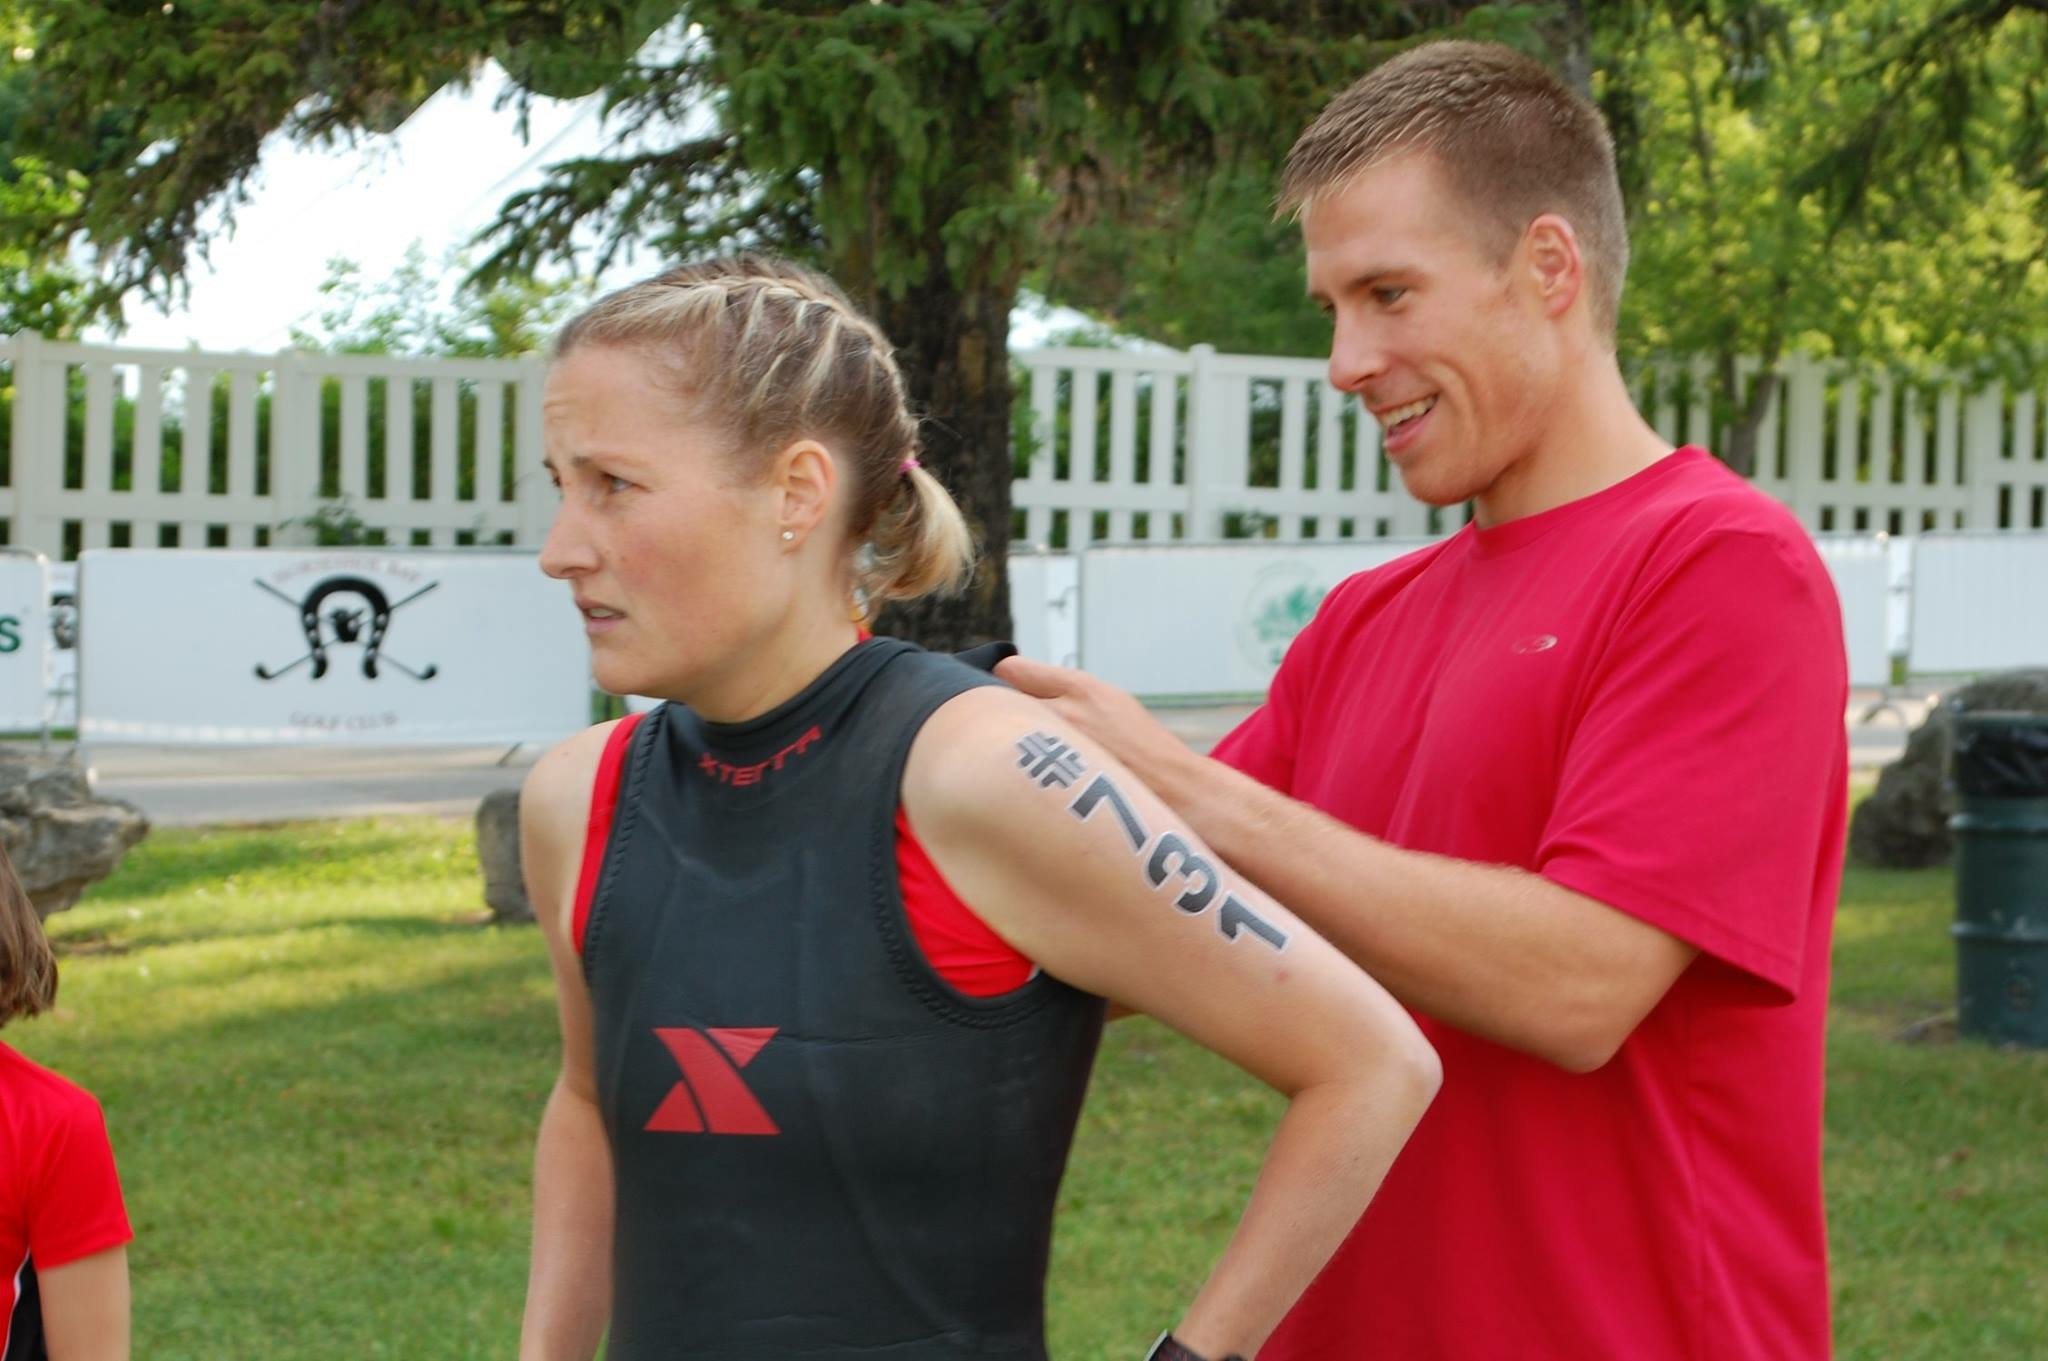 Krista getting pre-race assistance from her husband. Photo courtesy of Krista Willing.